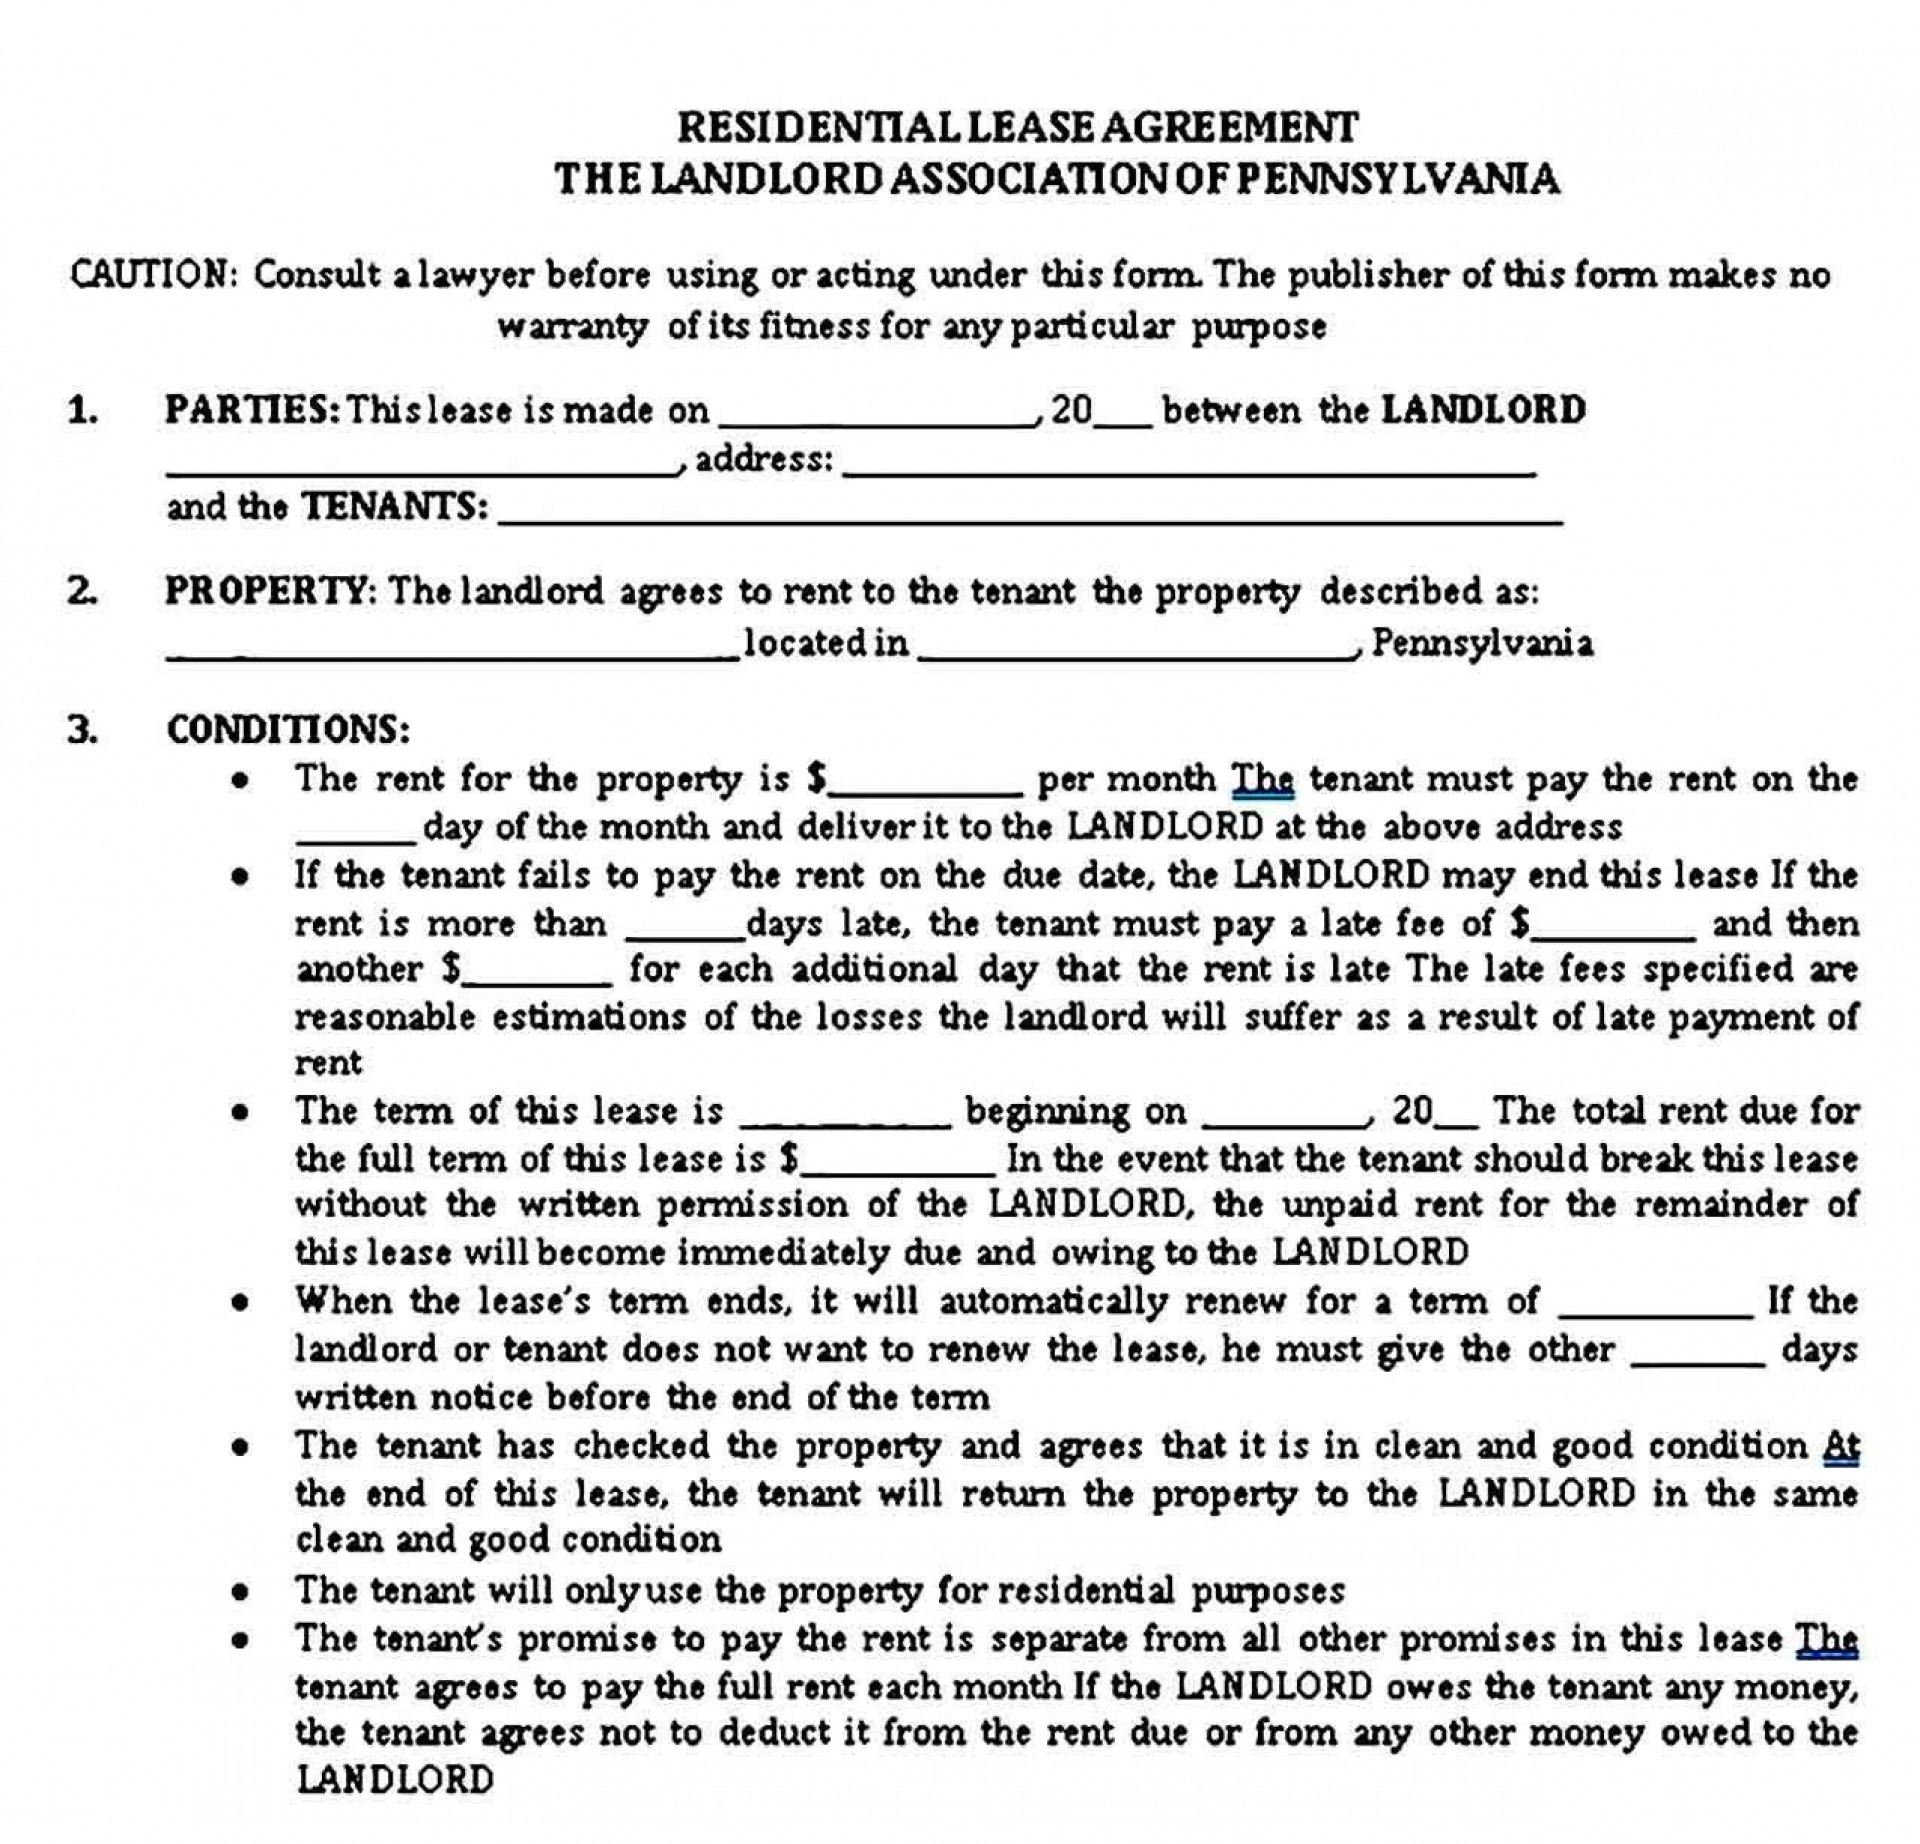 000 Surprising Renter Lease Agreement Template Image  Apartment Form Early Termination Of By Tenant South Africa Free1920